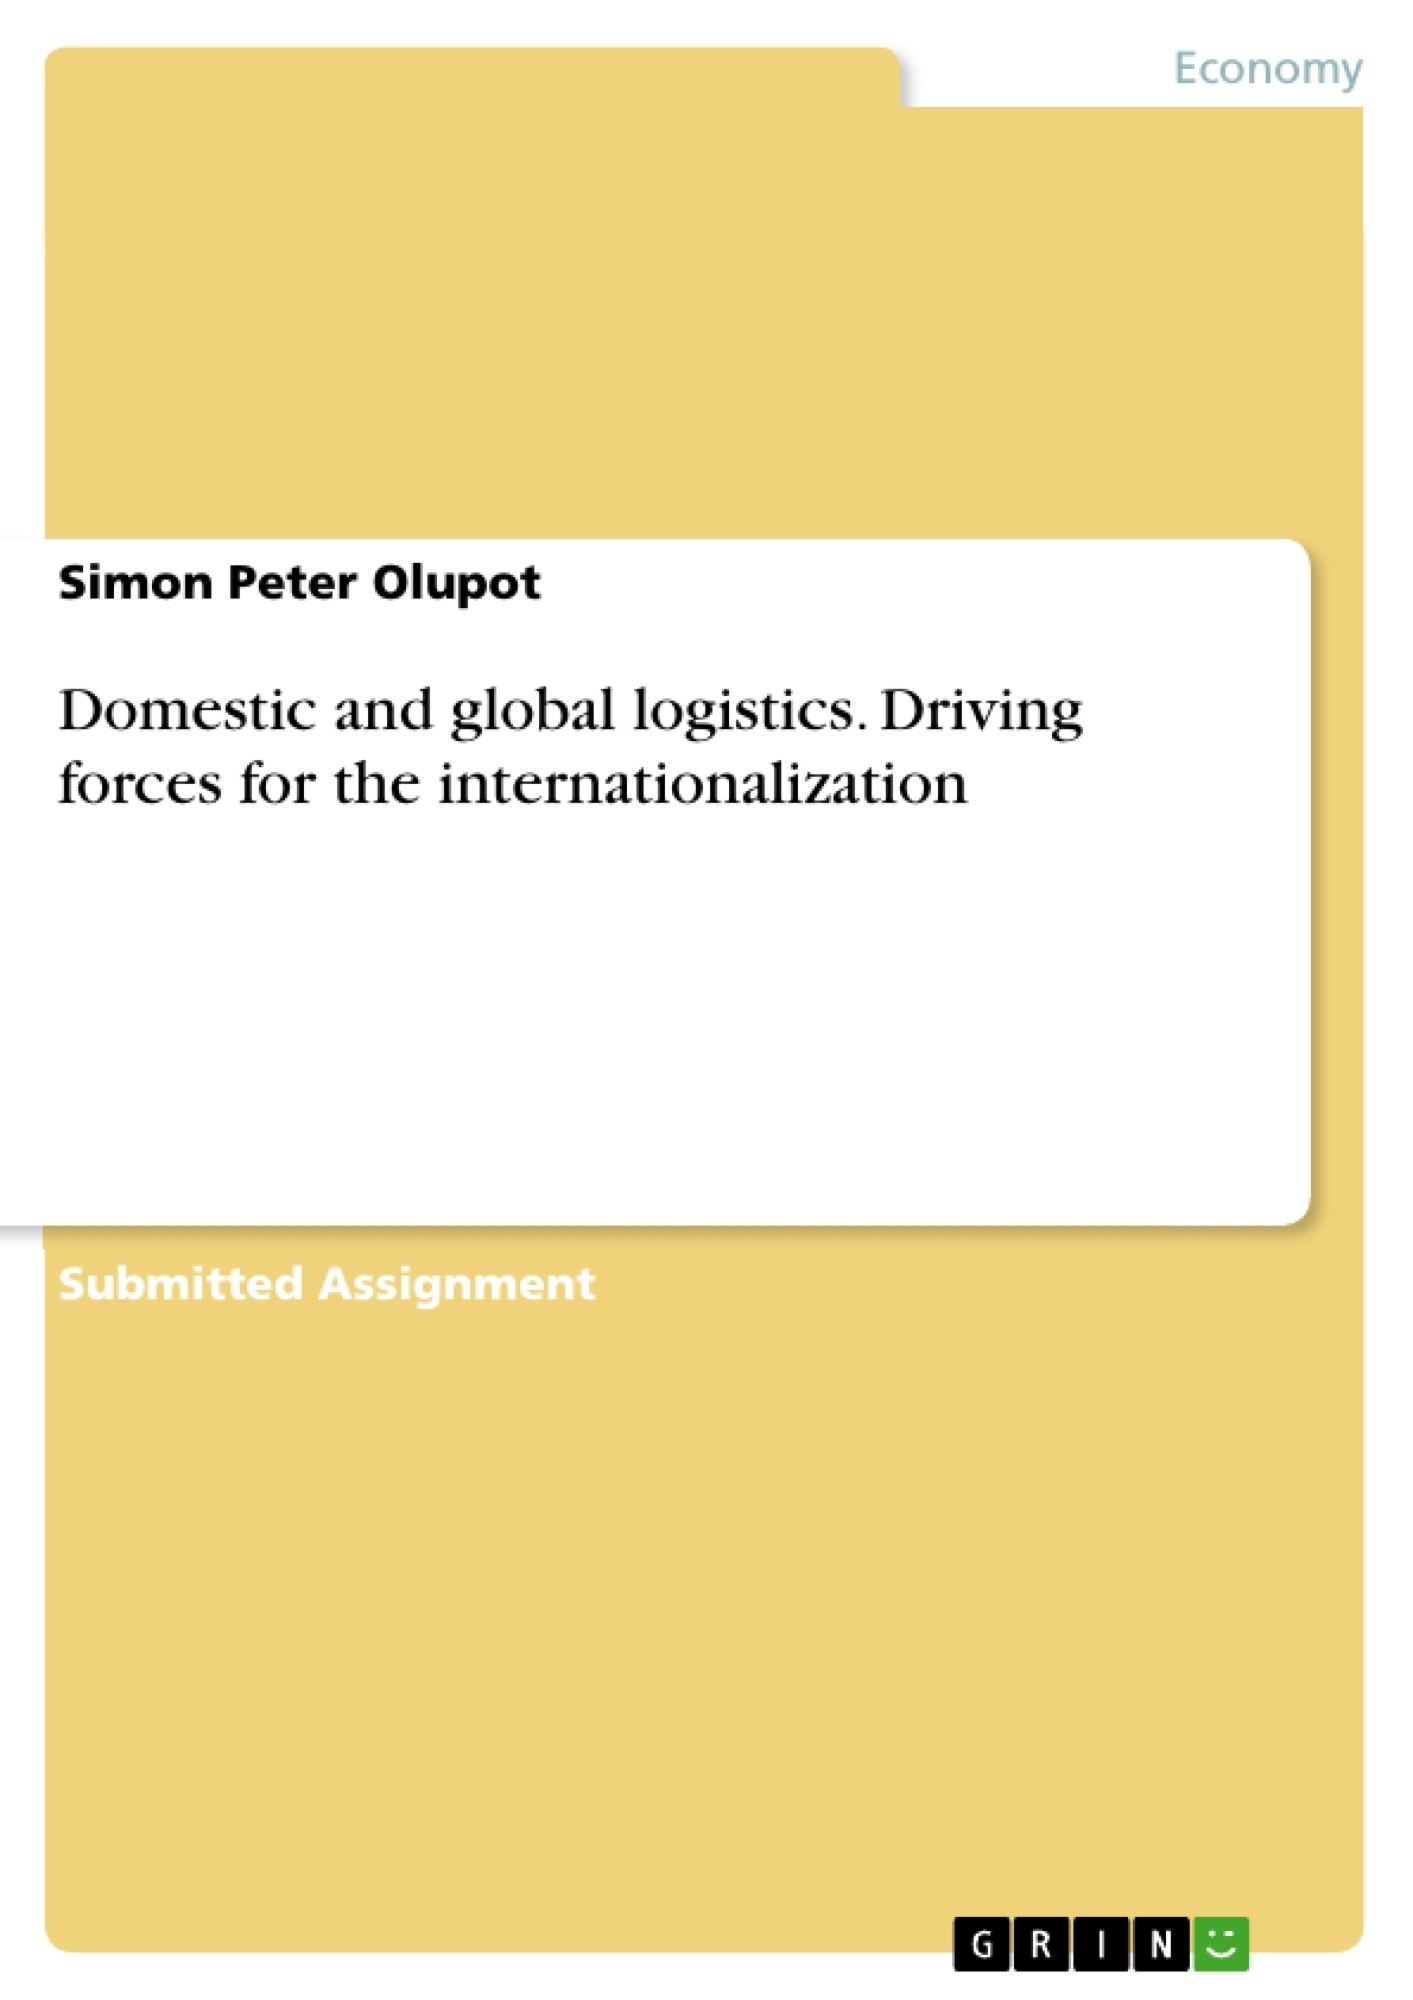 Title: Domestic and global logistics. Driving forces for the internationalization